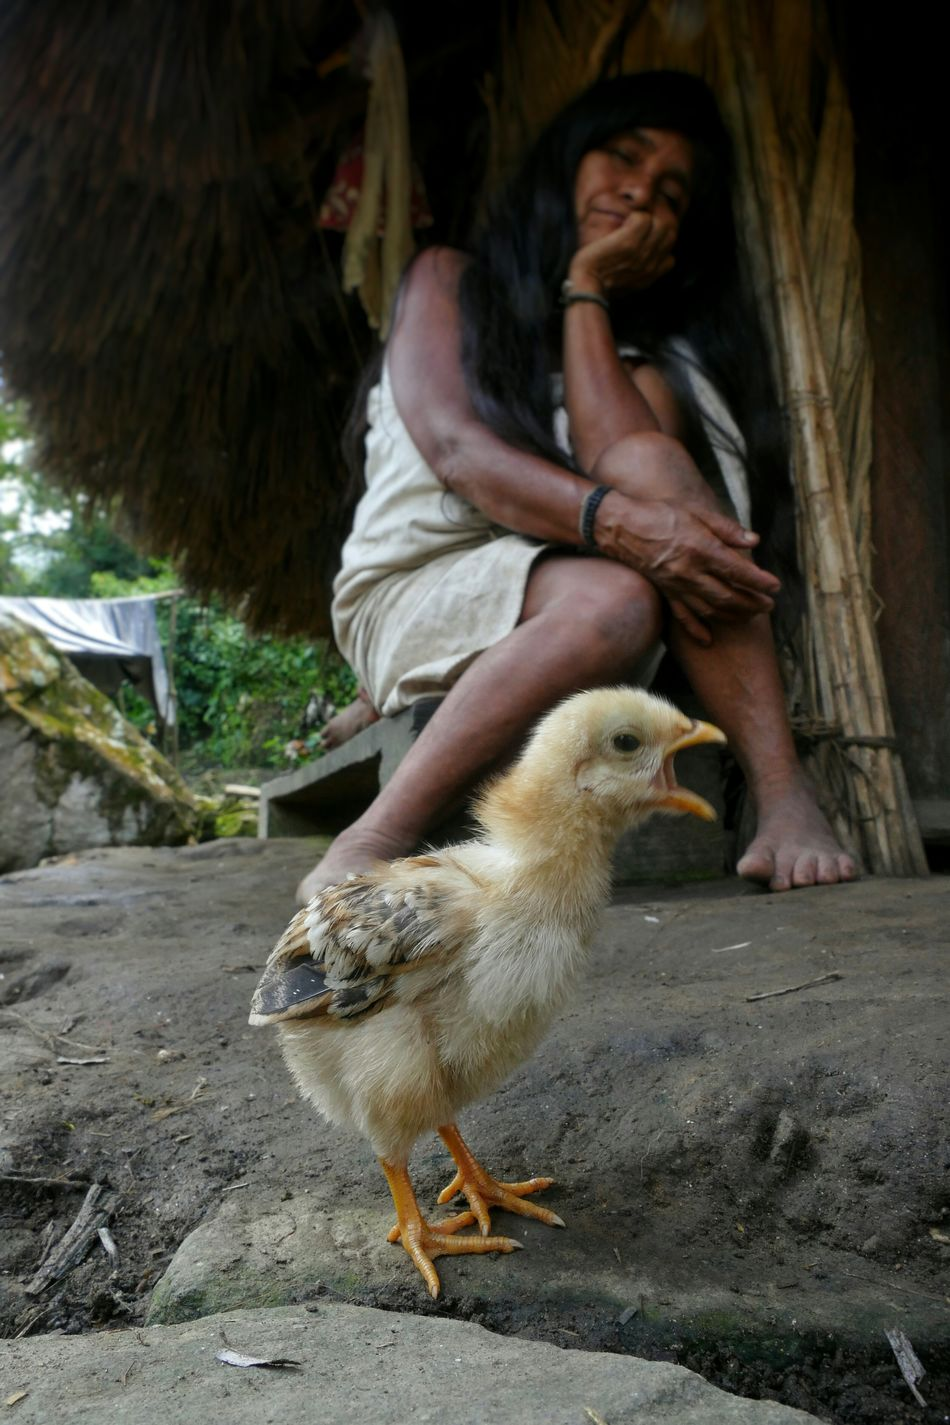 Ciudad Perdida Sierra Nevada De Santa Marta Indigenous People Kogi Chick Screeming Animals Focus On Foreground Chicken Woman Traditional Hut People Traveling Travel People And Places My Year My View Miles Away Women Around The World